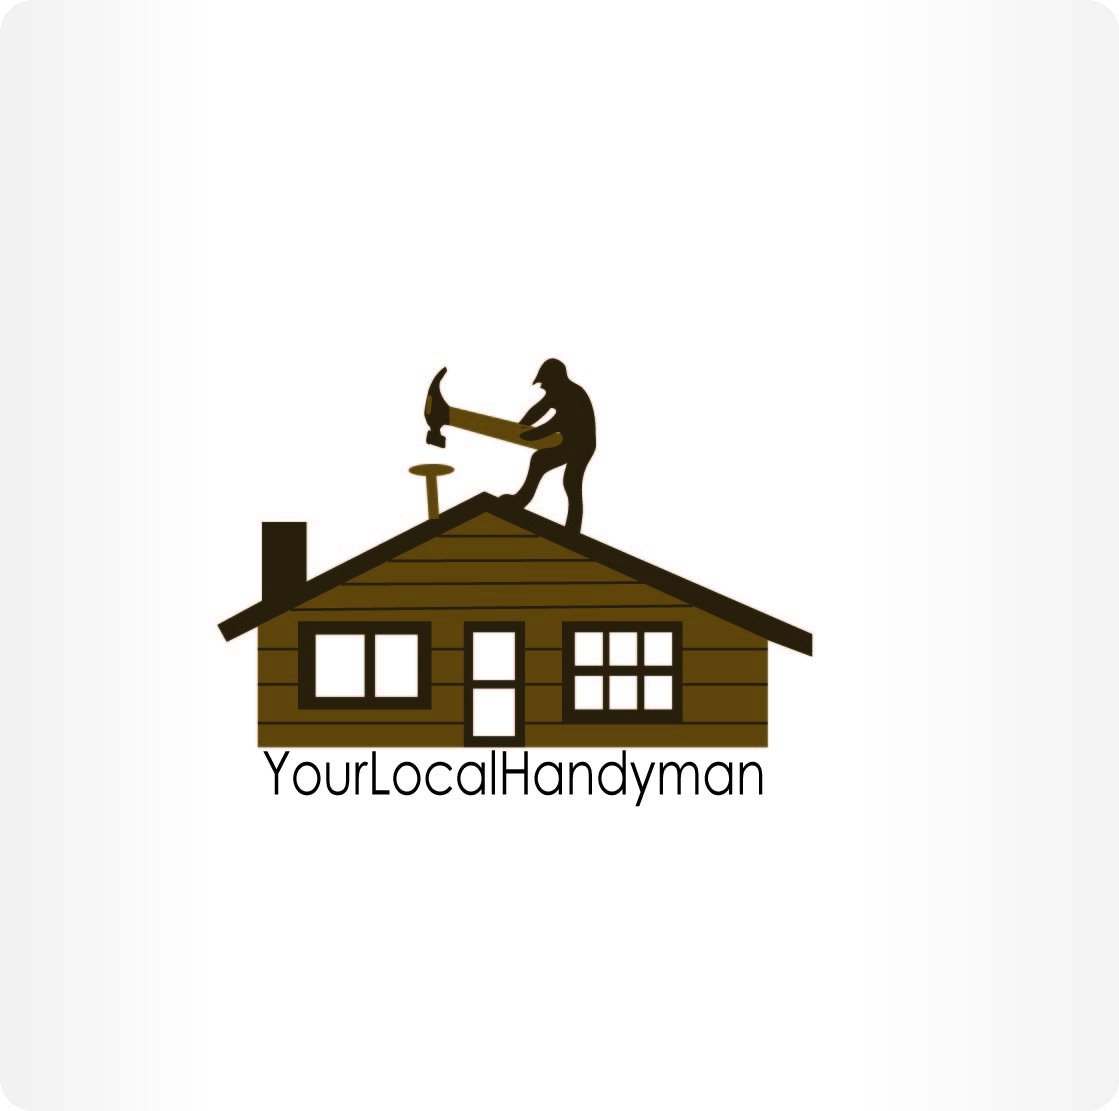 Logo Design by Saunter - Entry No. 12 in the Logo Design Contest YourLocalHandyman.